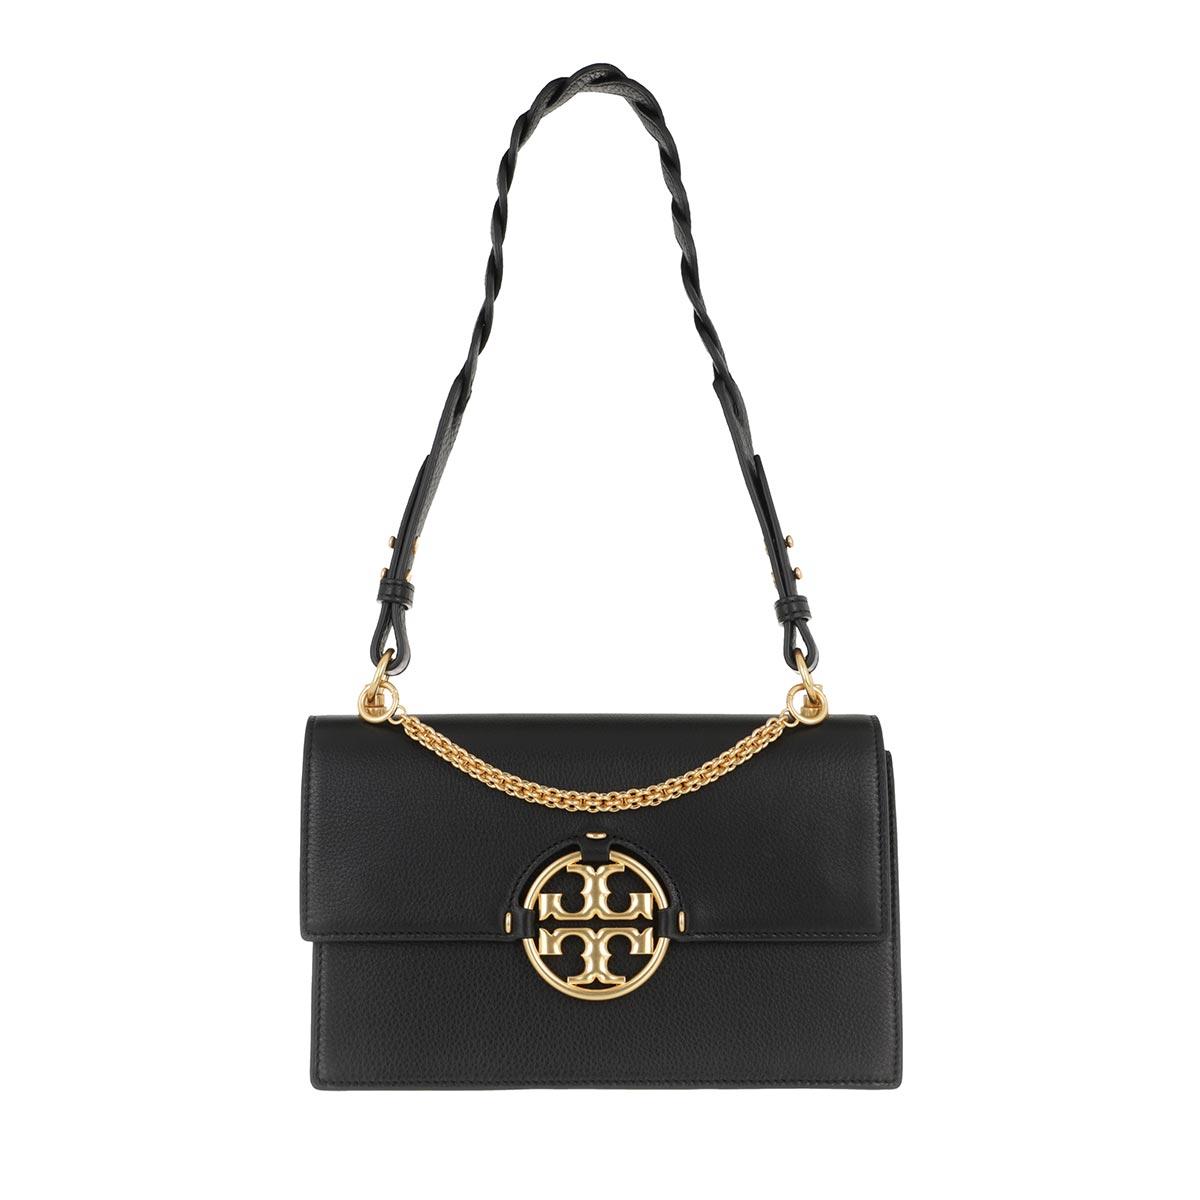 Handtasche, Tory Burch, Miller Shoulder Bag Black